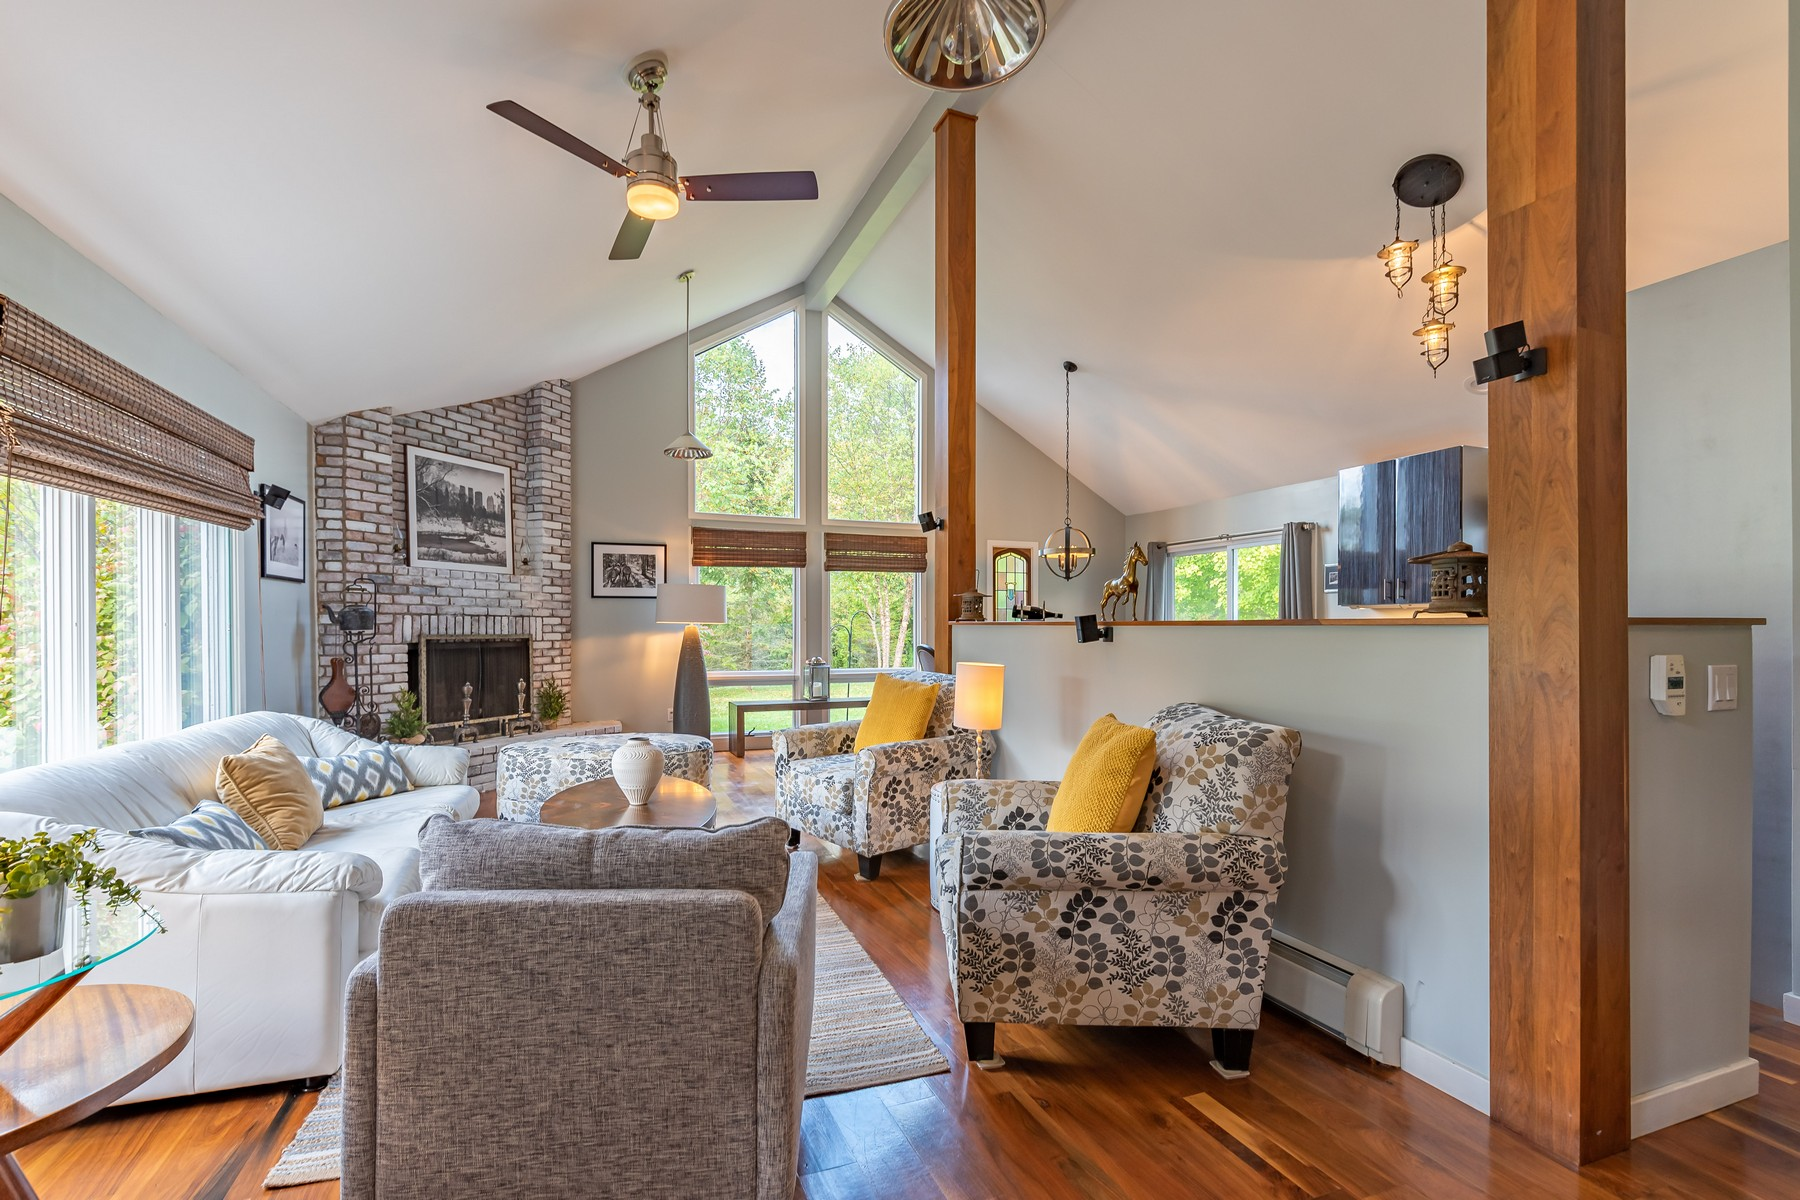 Single Family Homes for Sale at Manchester Village Contemporary Cape 143 Brightwood Road Manchester, Vermont 05254 United States